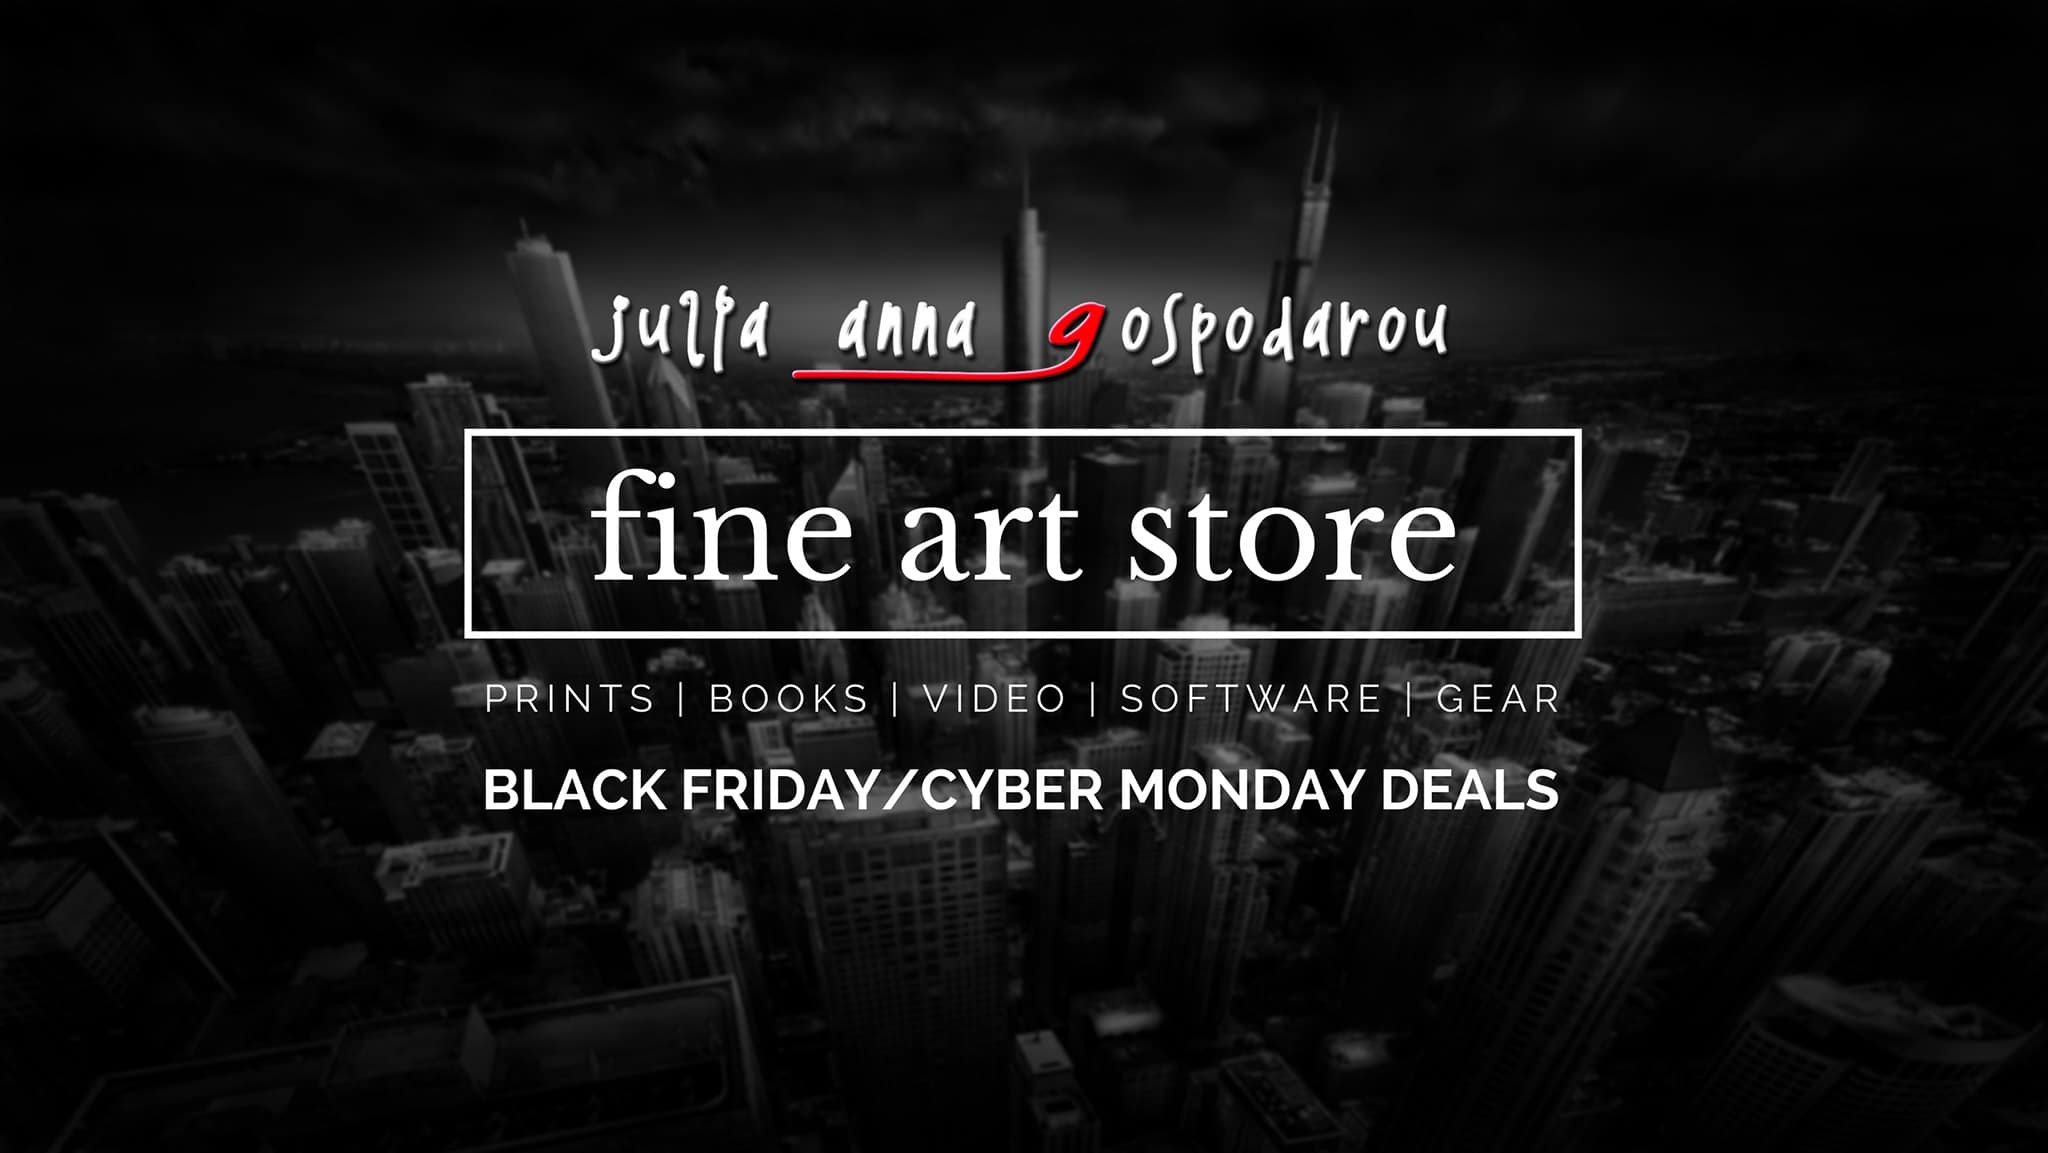 Julia Anna Gospodarou fine art store black and white photography, long exposure photography, architecture photography black friday